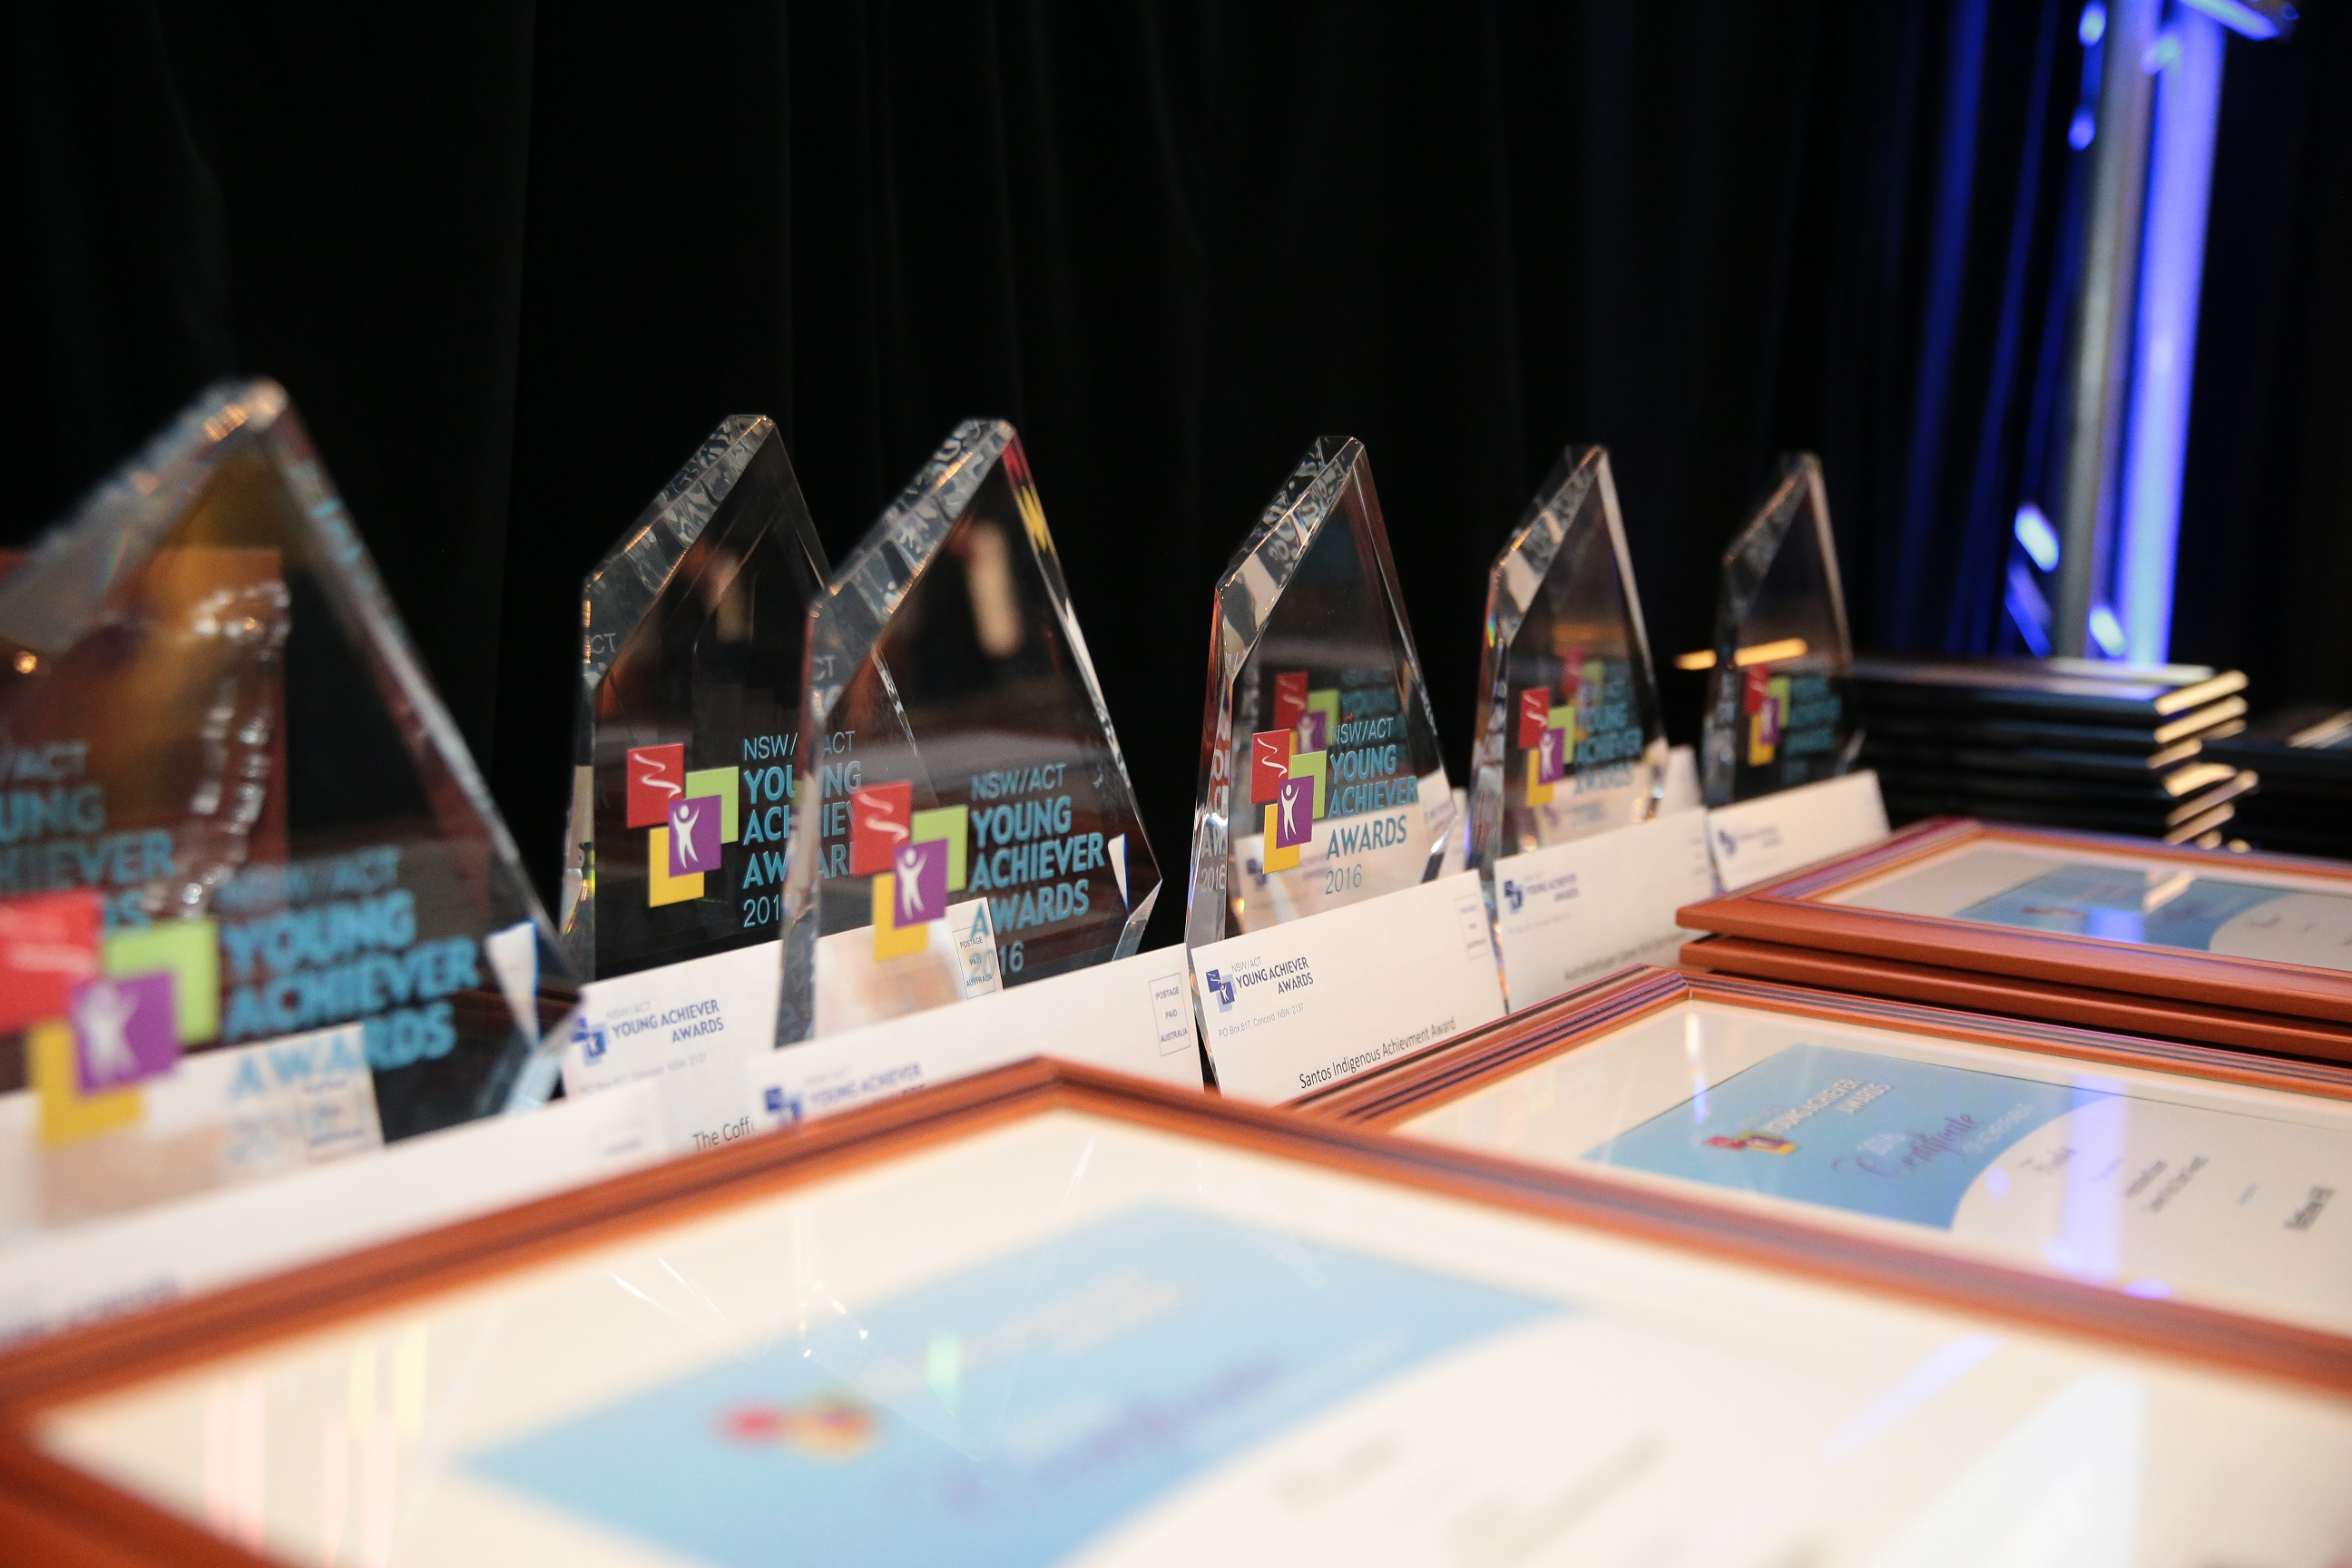 NSW/ACT Young Achiever Awards